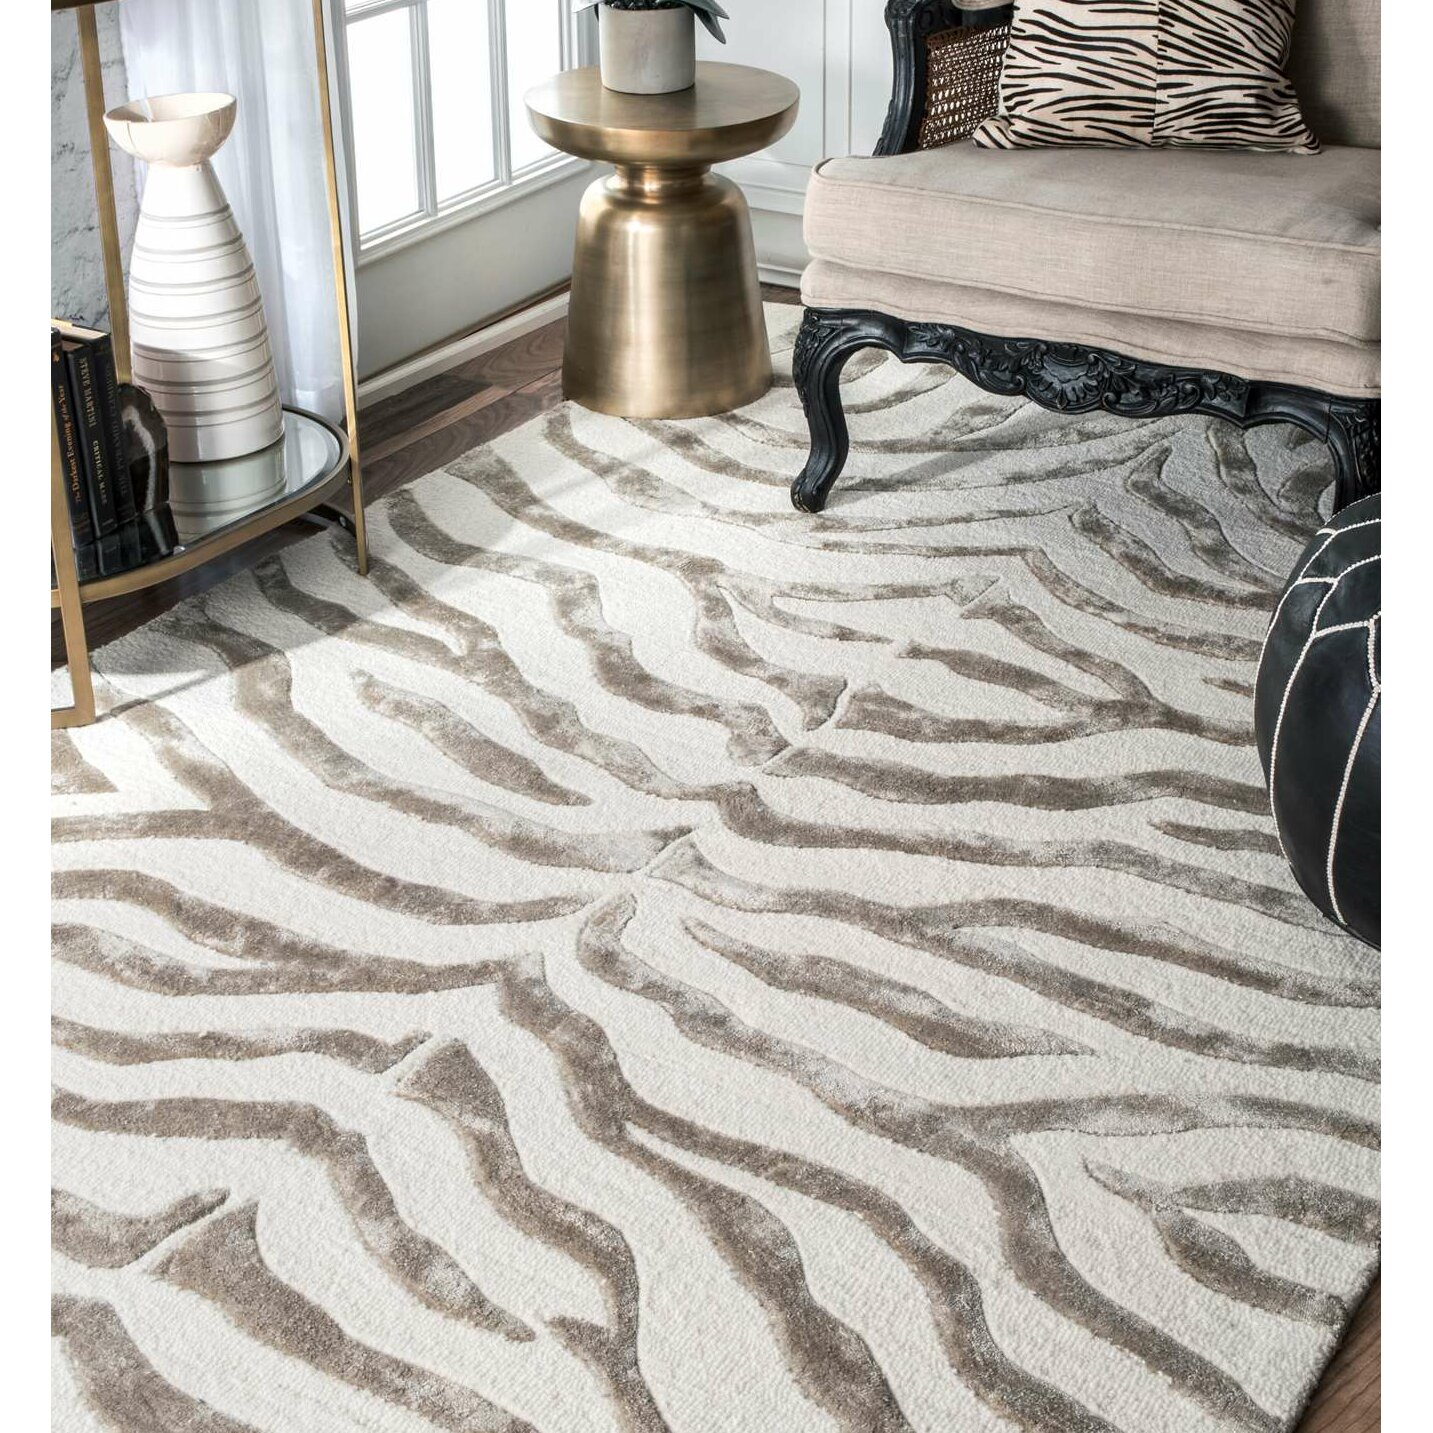 Mercer41 Dodgson Soft Zebra Technique Grey/Ivory Area Rug